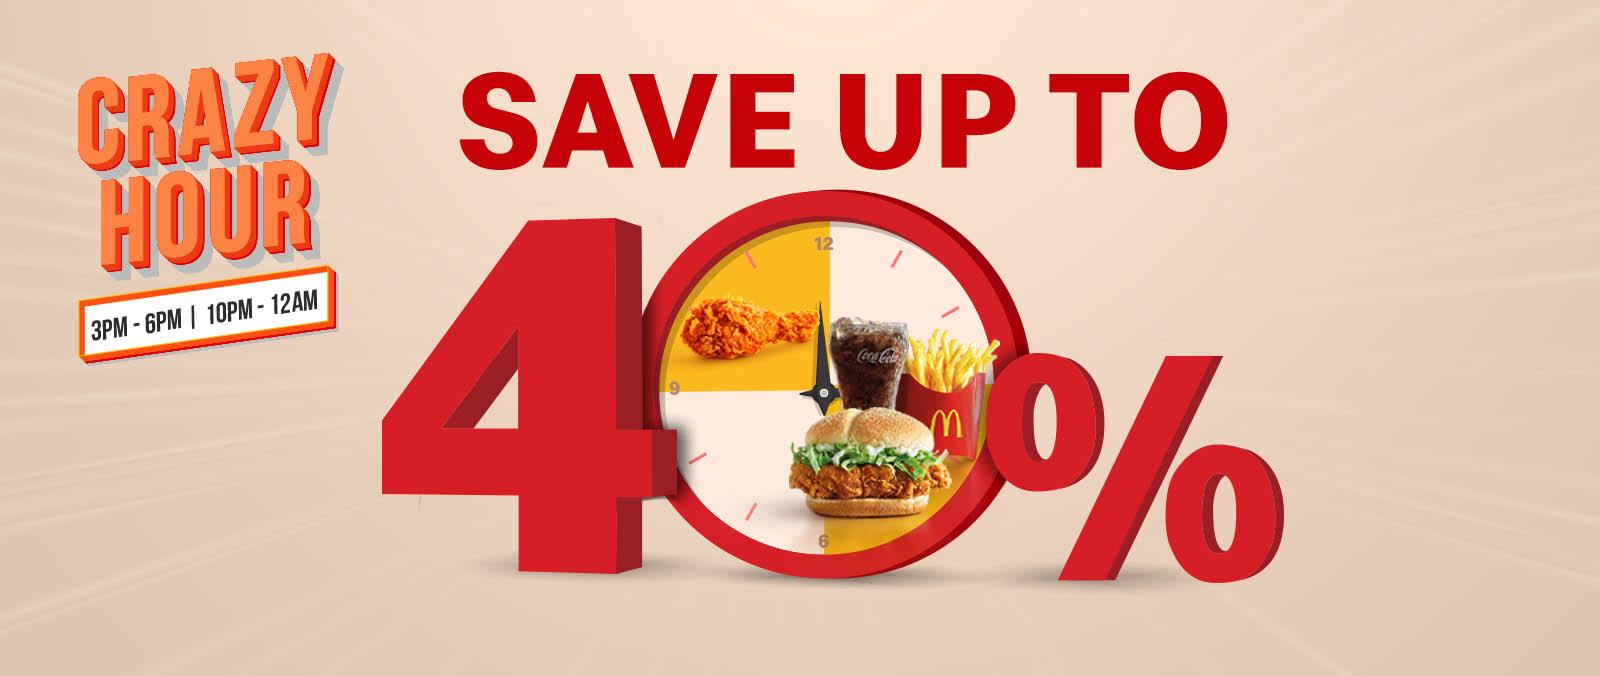 Save up to 40% everyday  with McDelivery Crazy Hour!'s image'